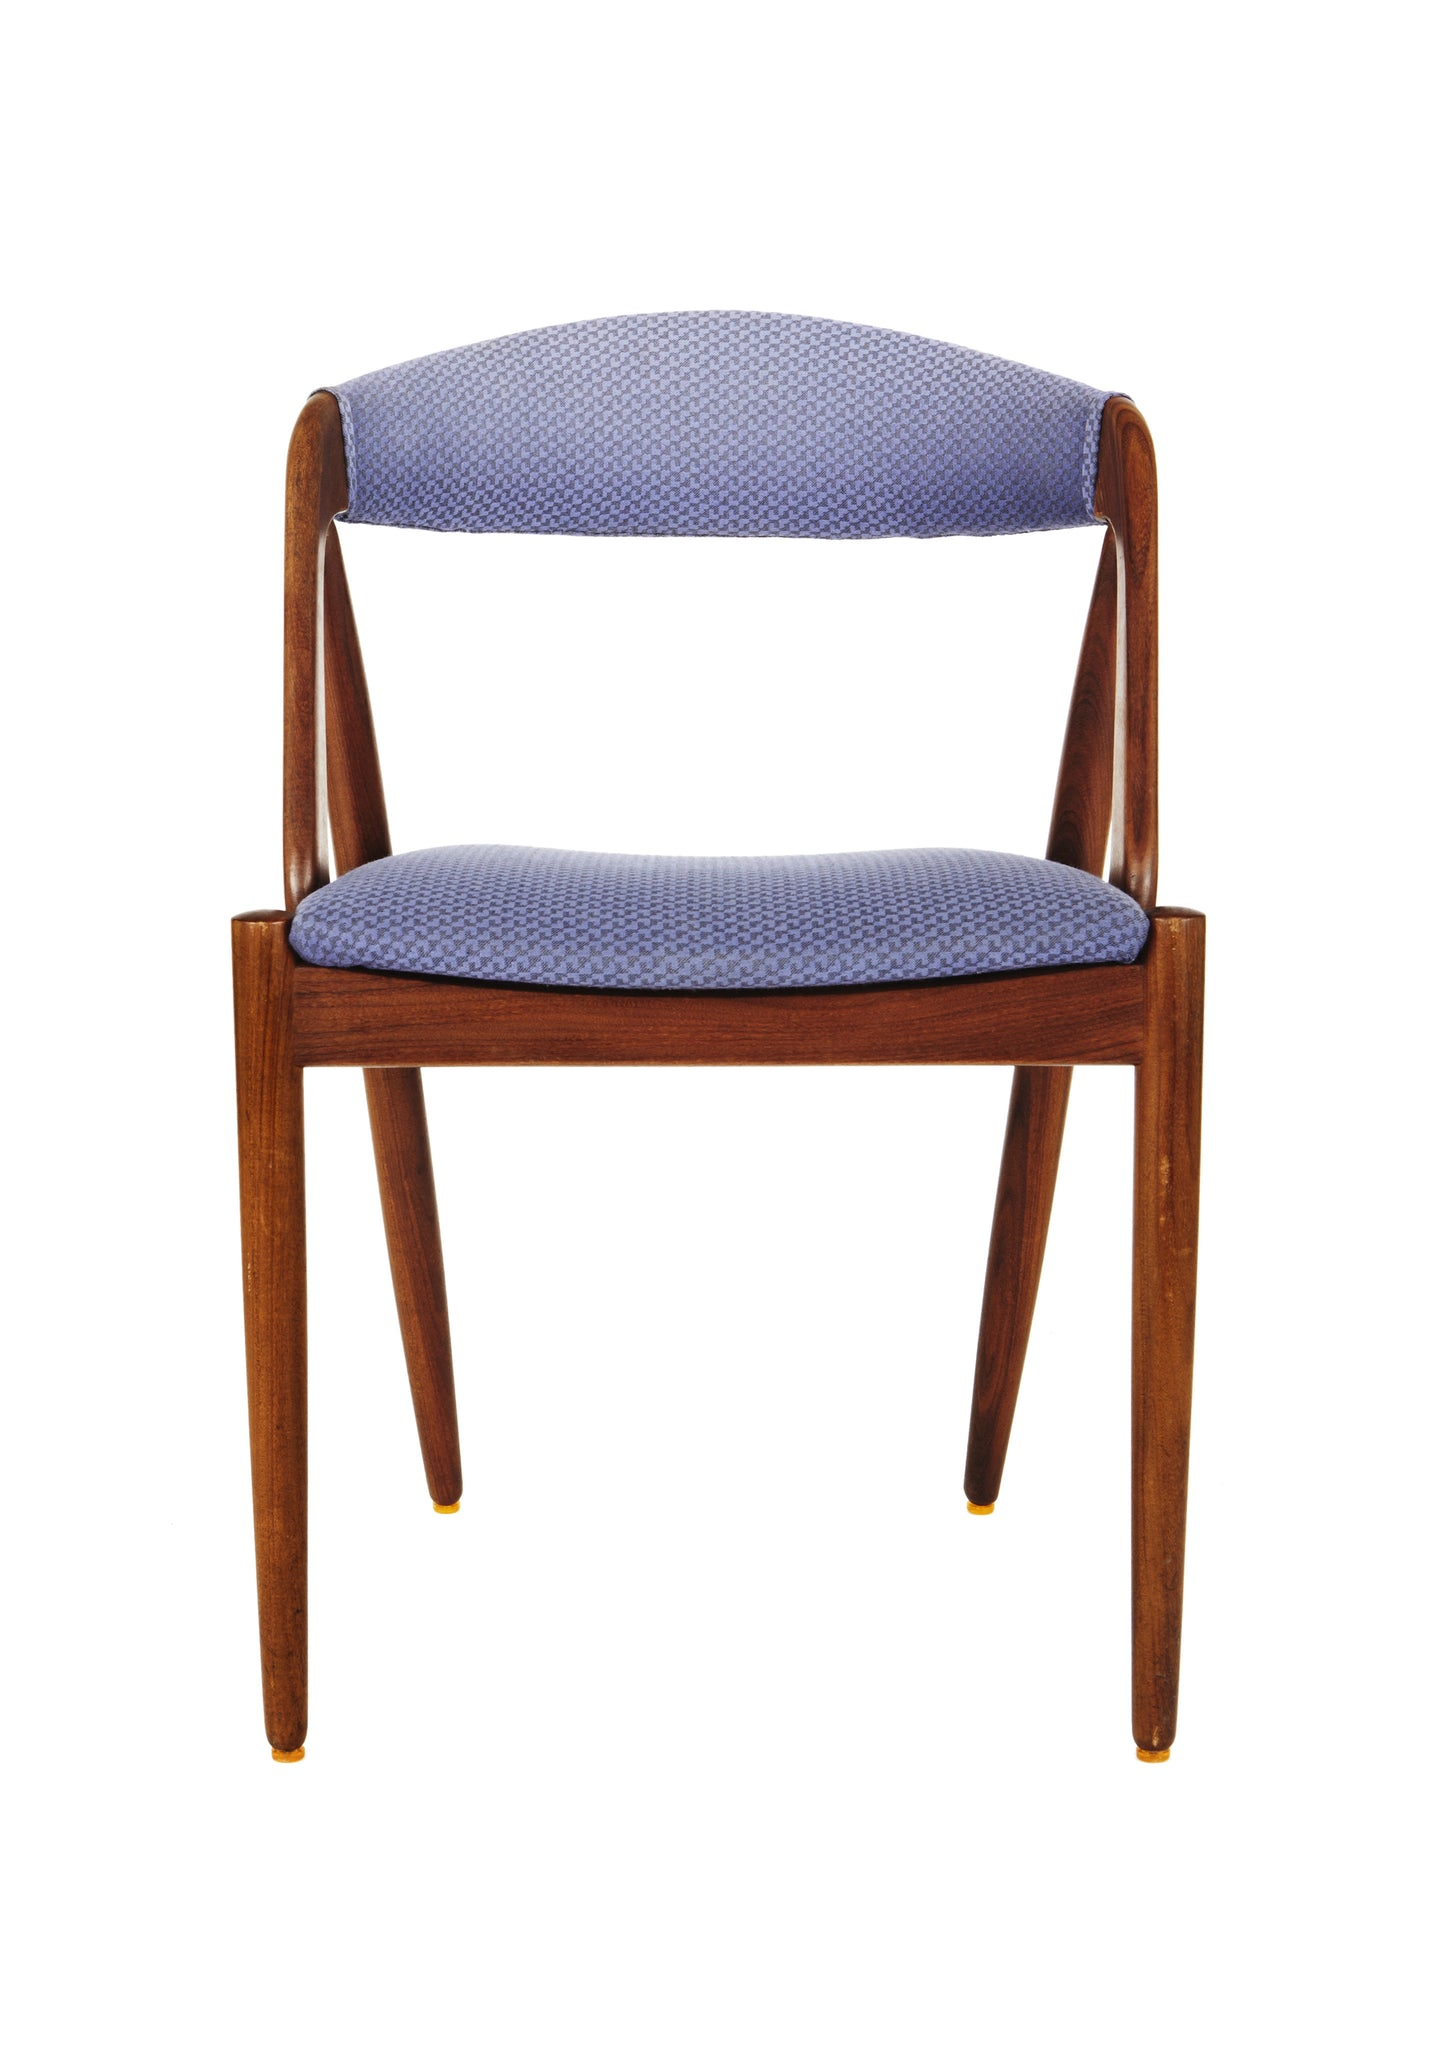 Kai Kristiansen Model 31 Chair